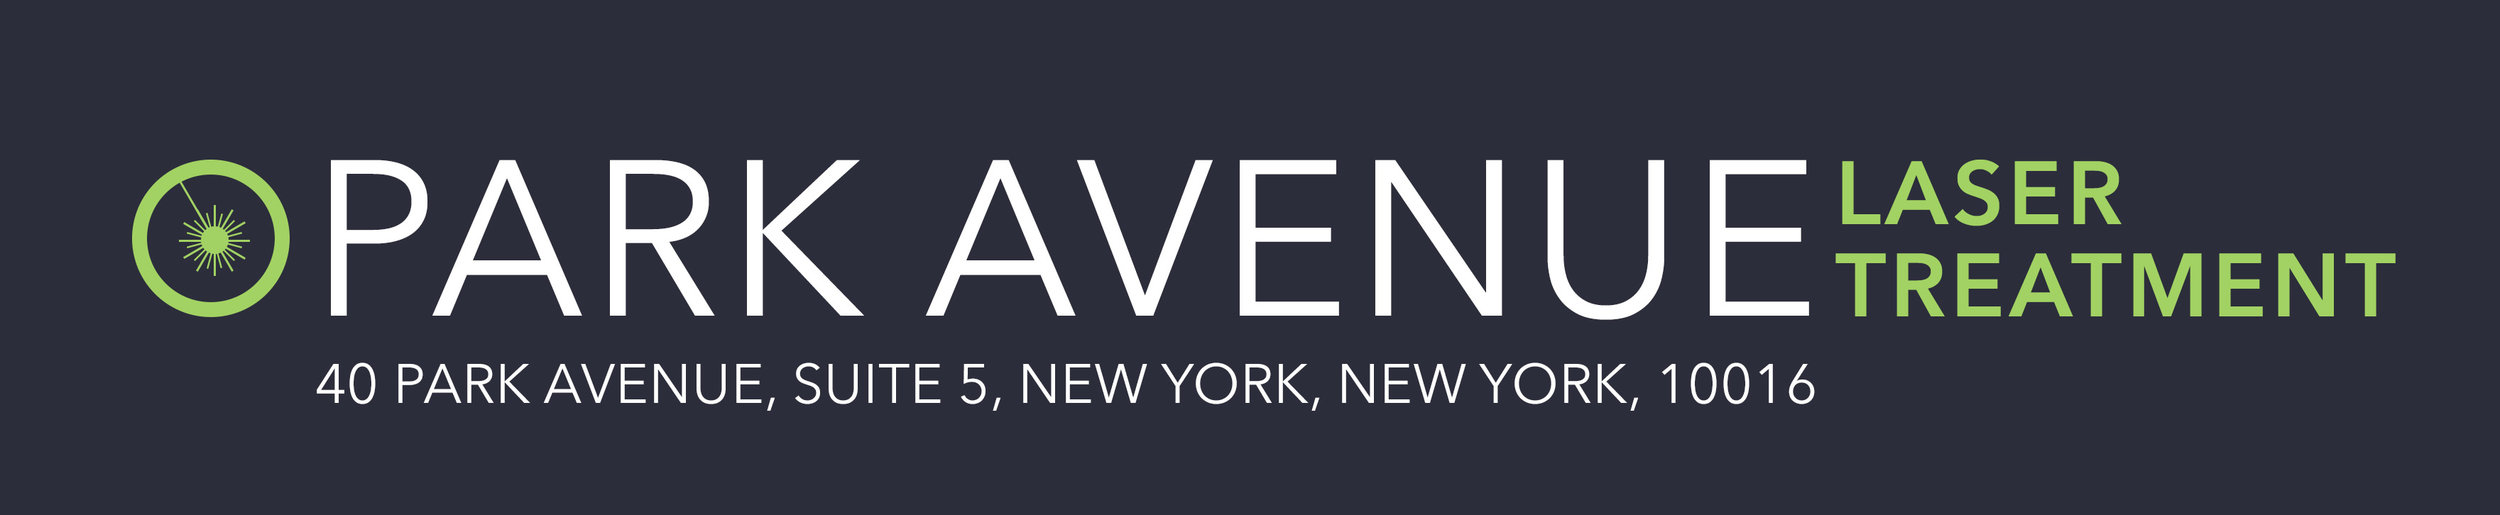 ParkAvenueLaserTreatmentLogo_Address.jpg